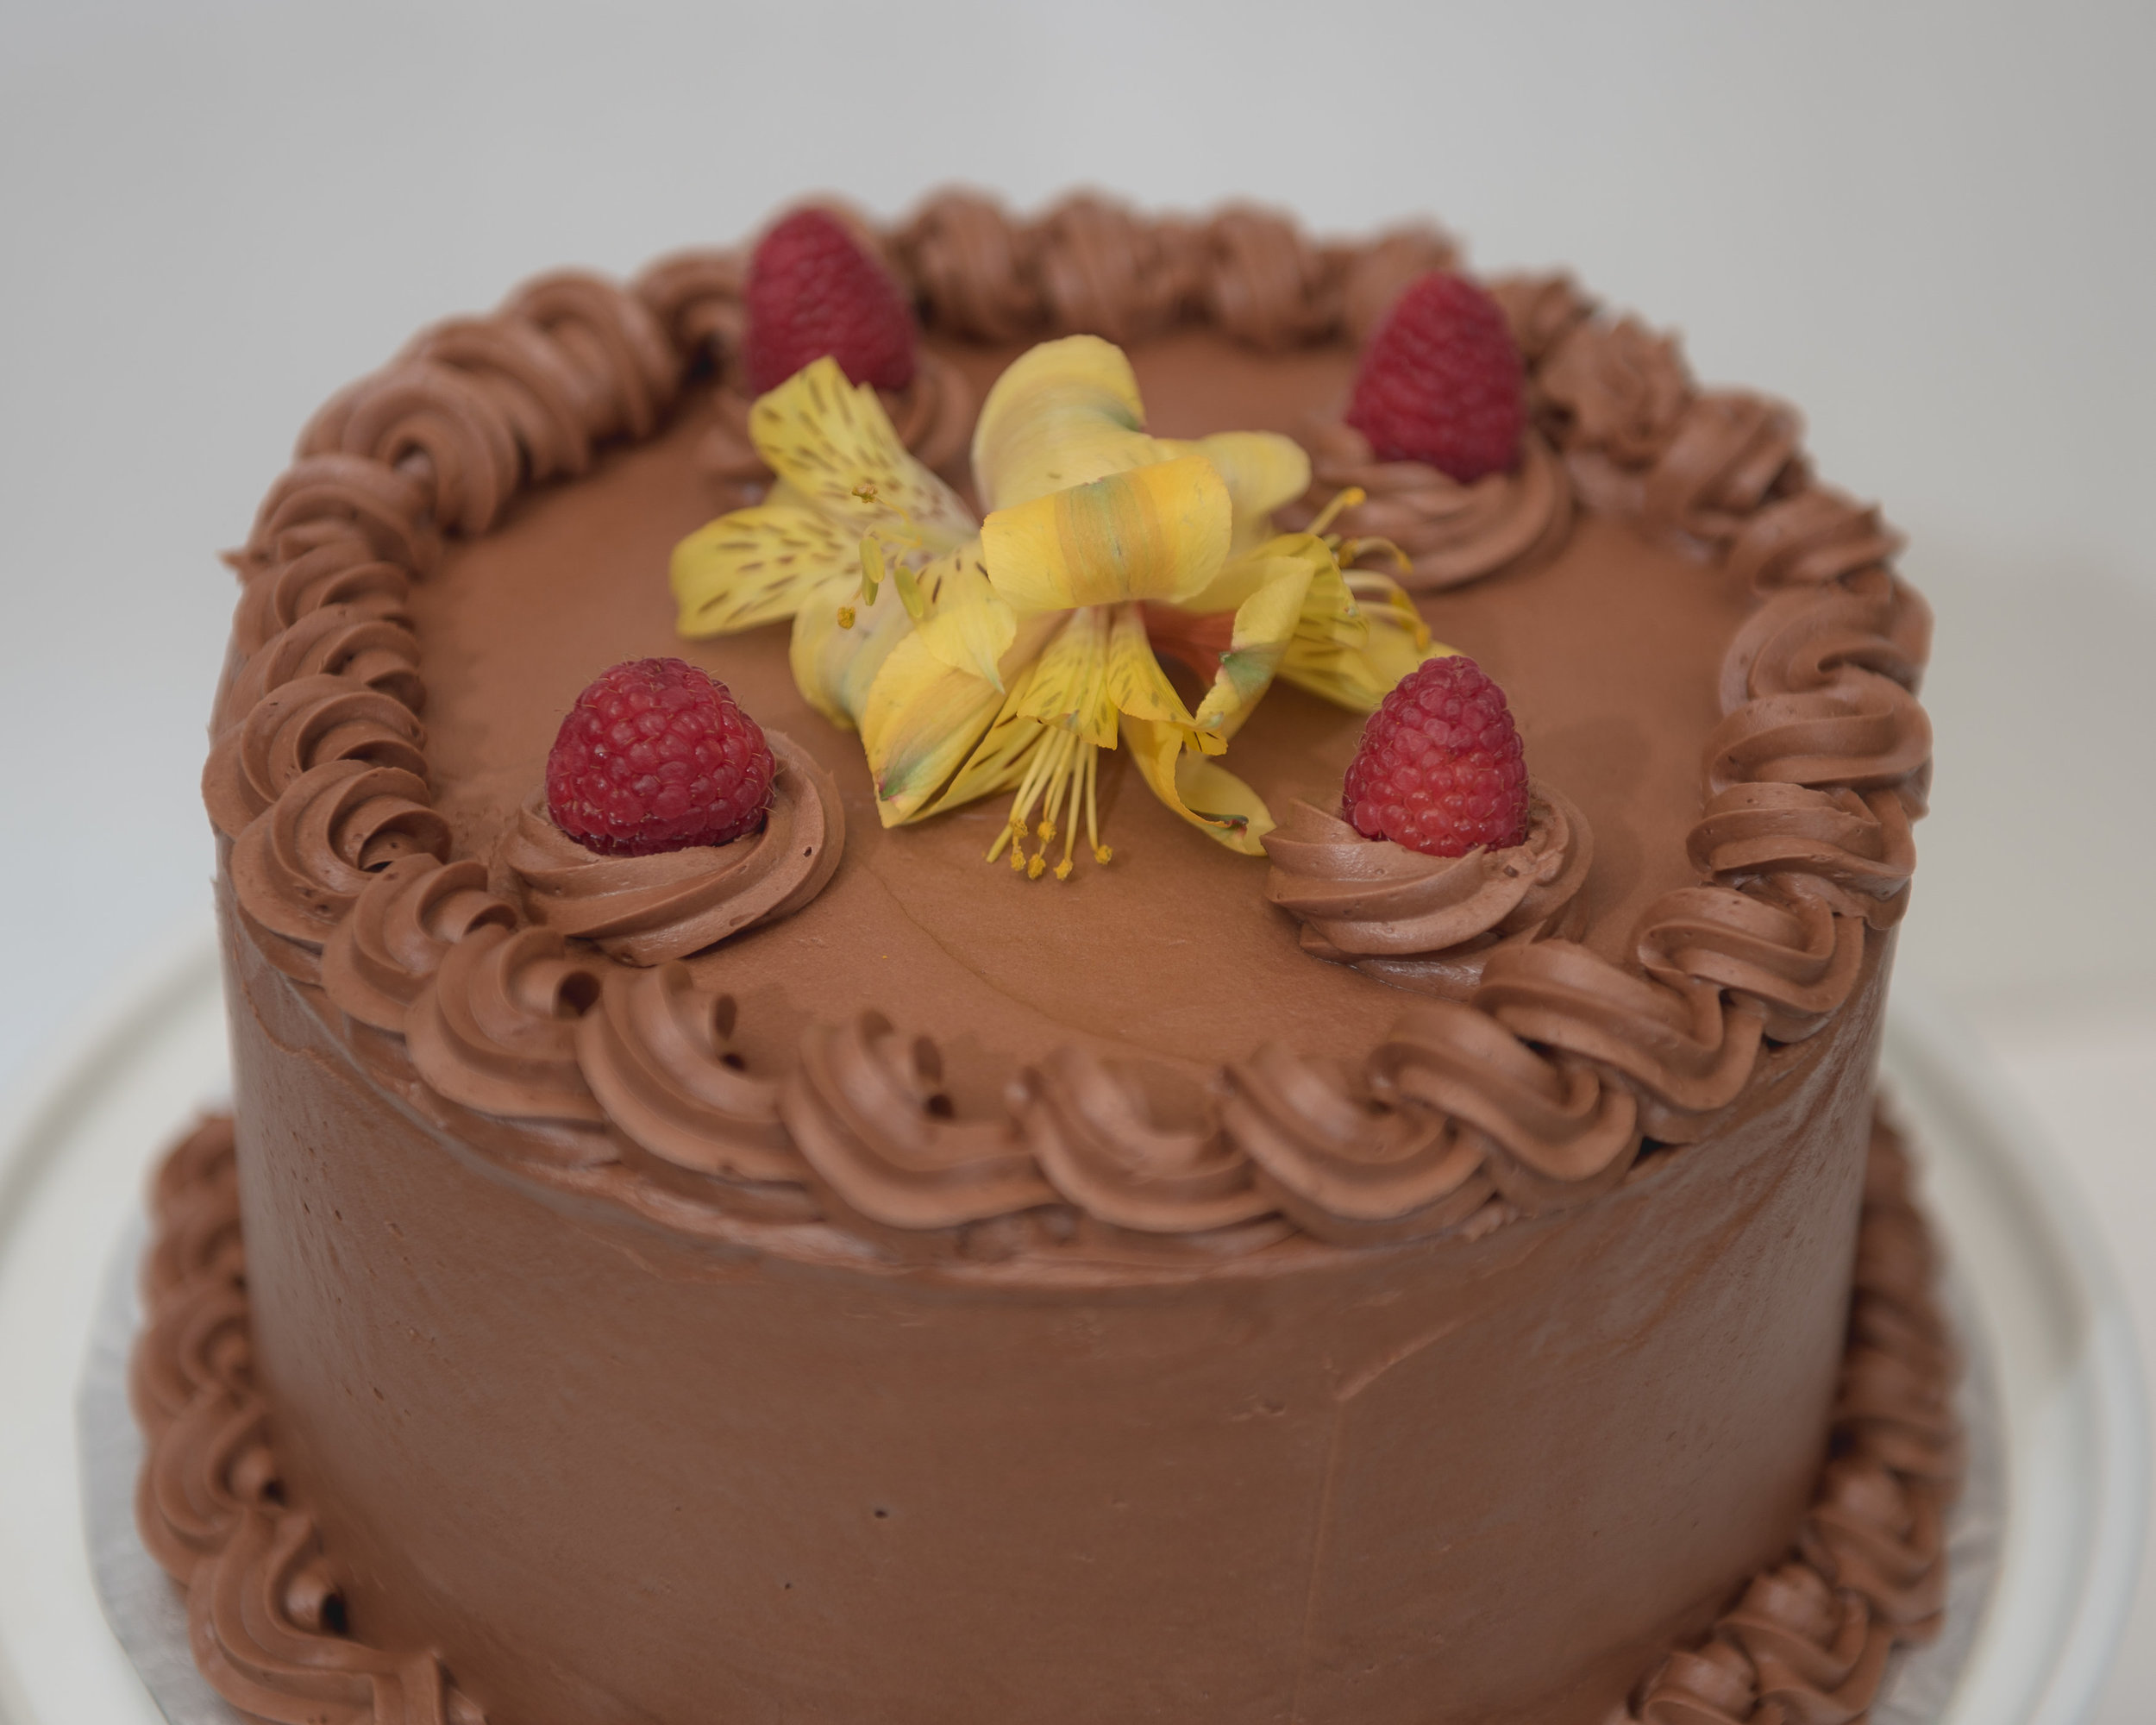 Double chocolate cake with raspberries.fresh flowers not included